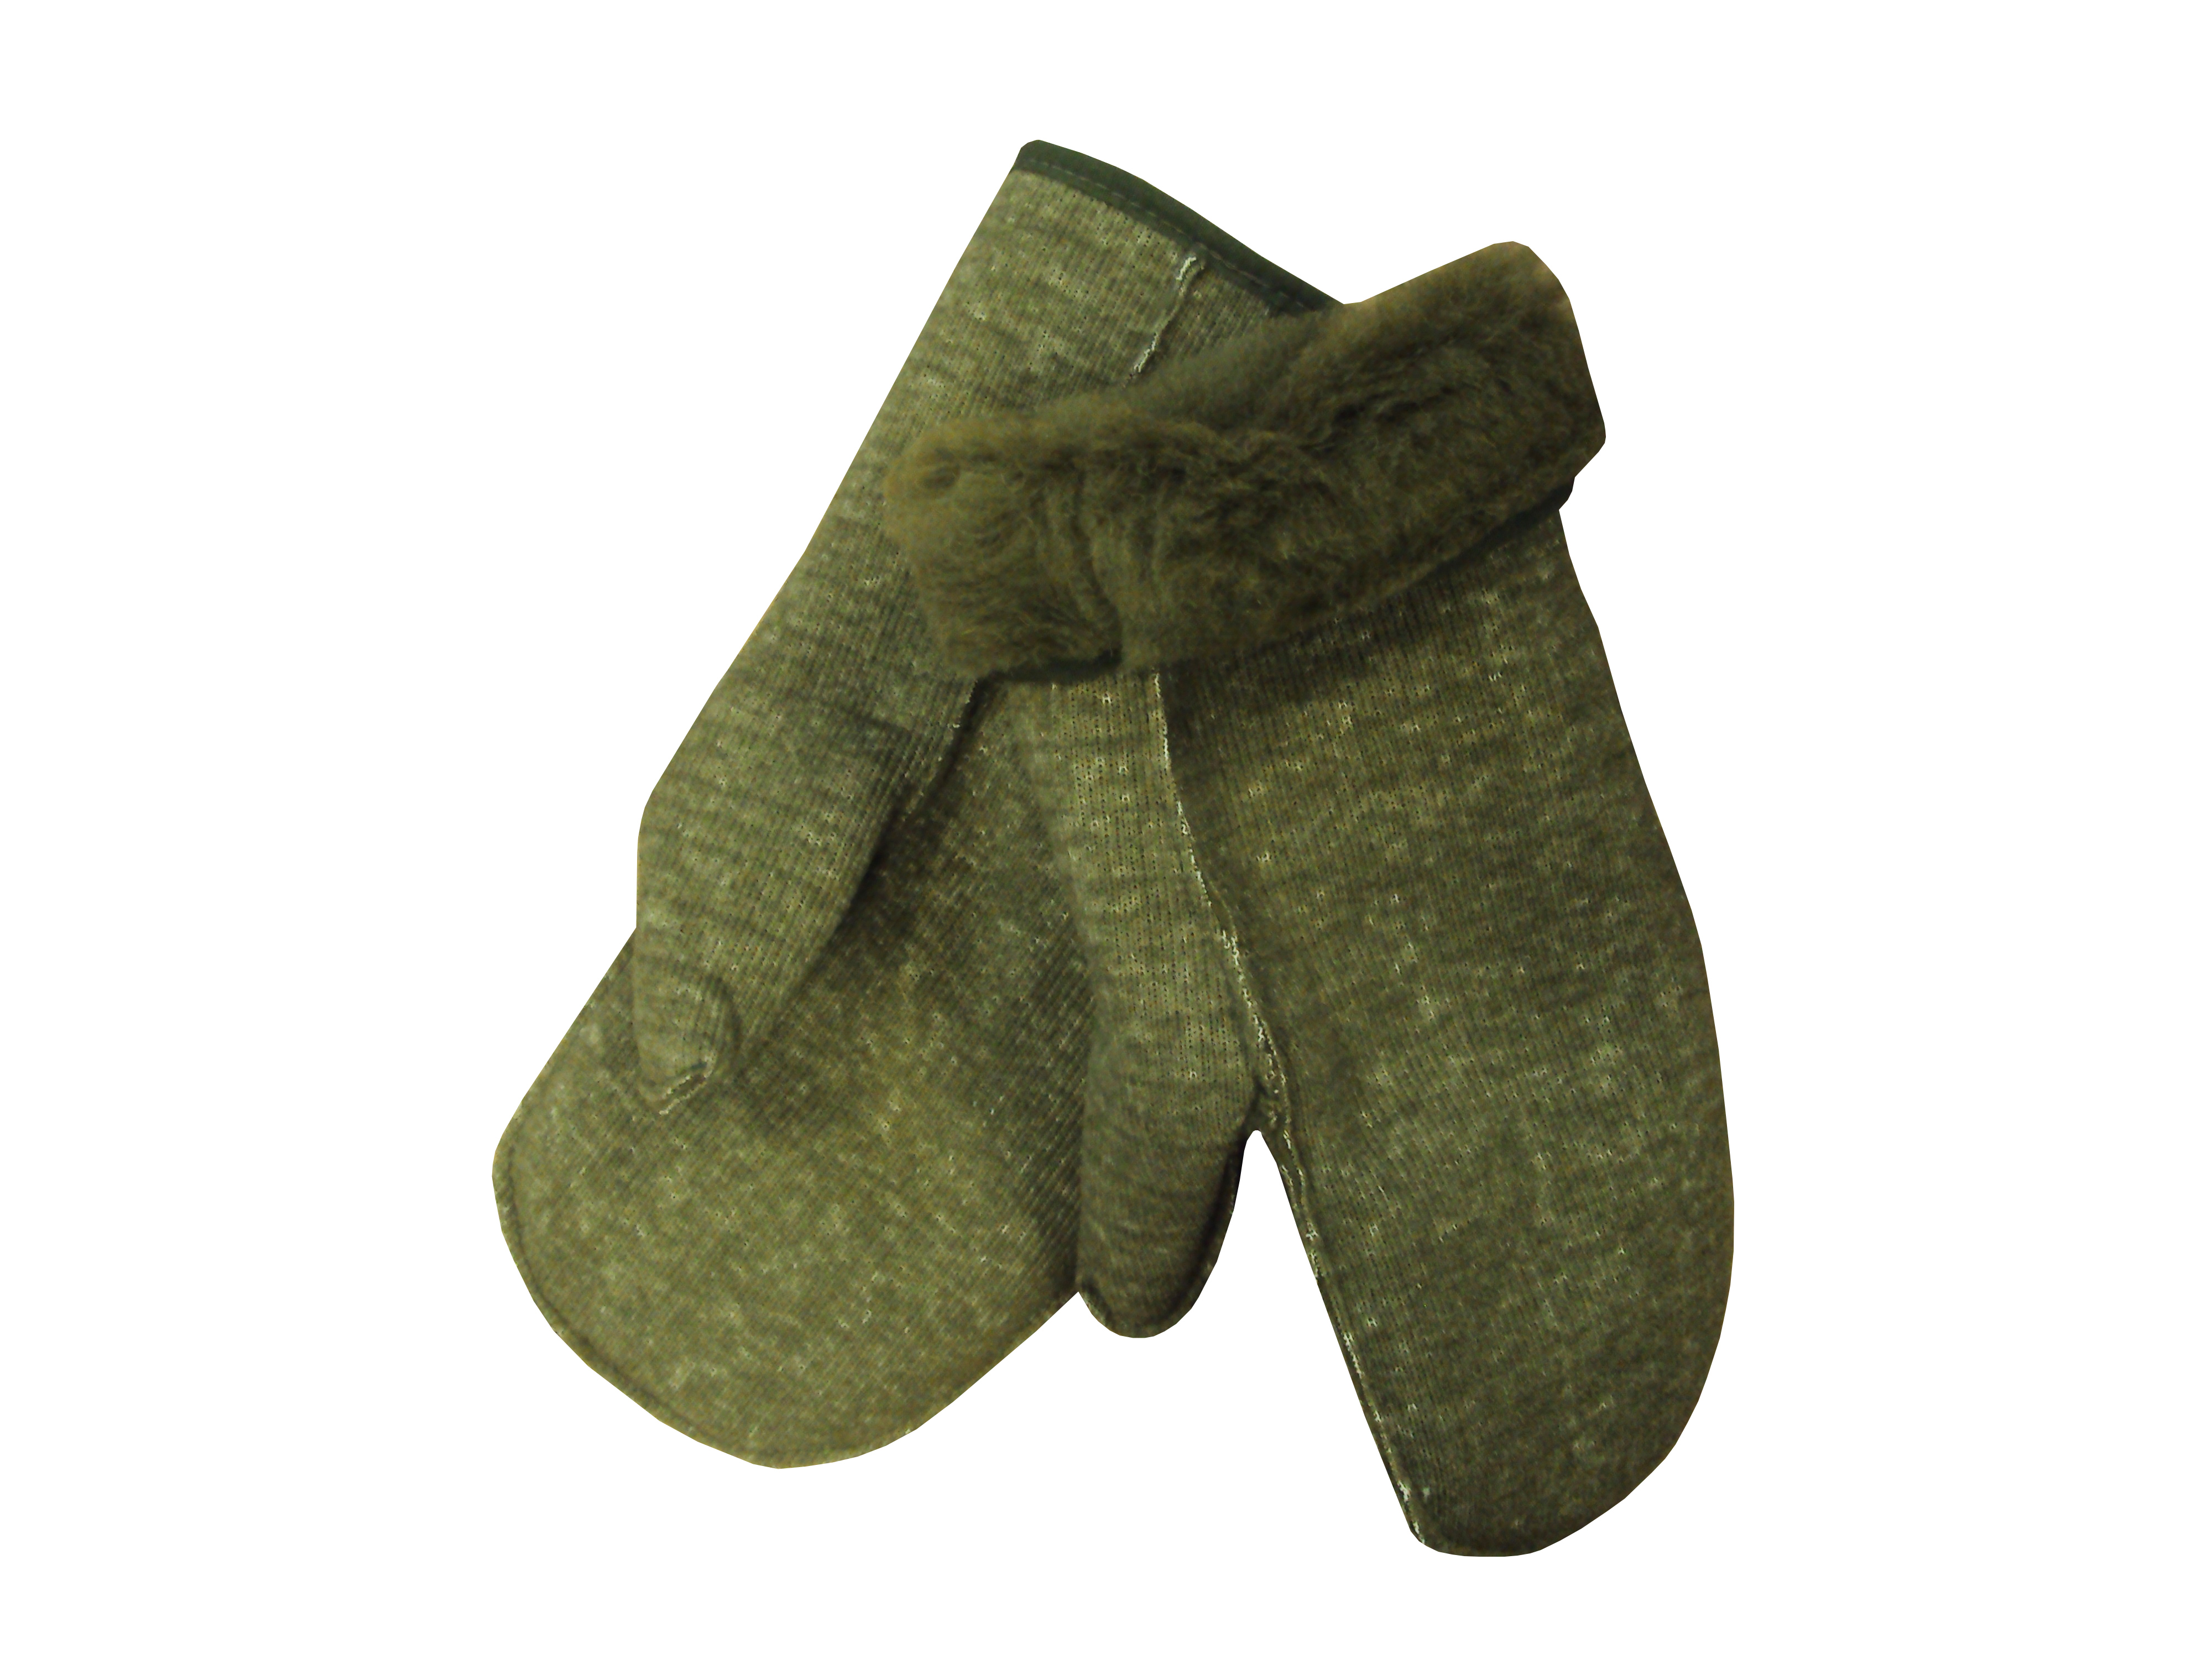 Lot 2 - Pack of 76 Mittens - Green - Wool Pile Liner - New